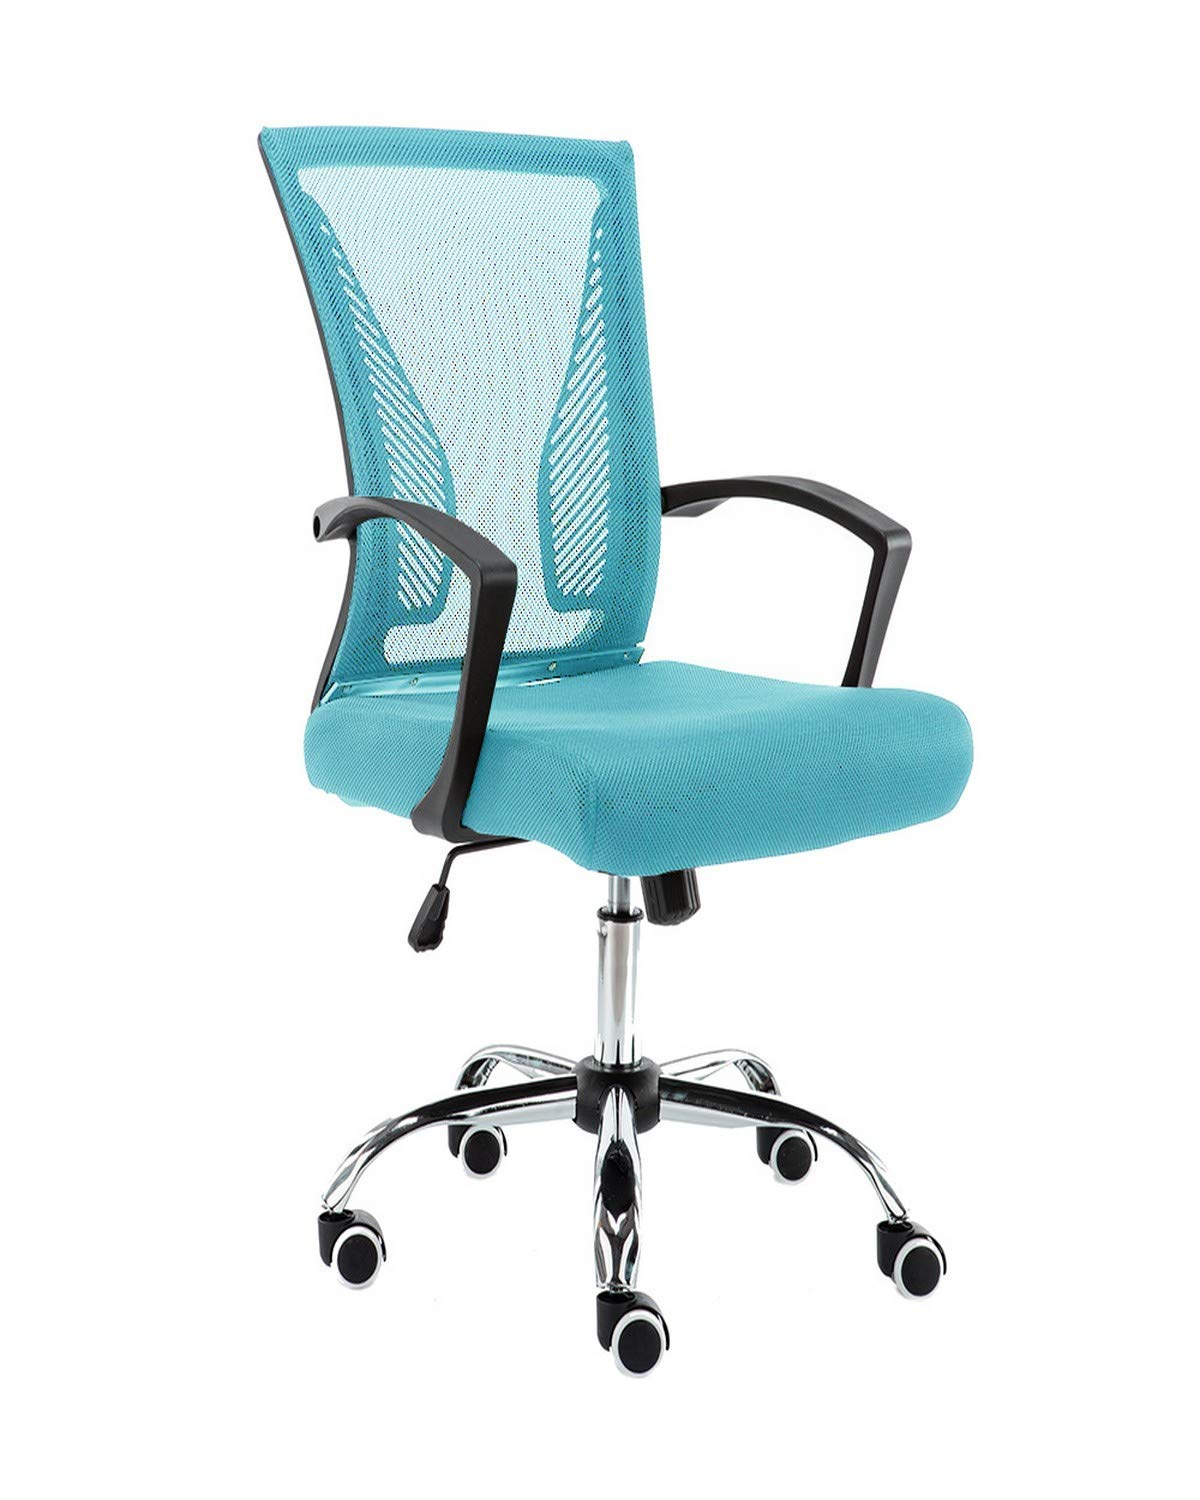 Modern Home Zuna Mid-Back Office Chair - Black/Aqua